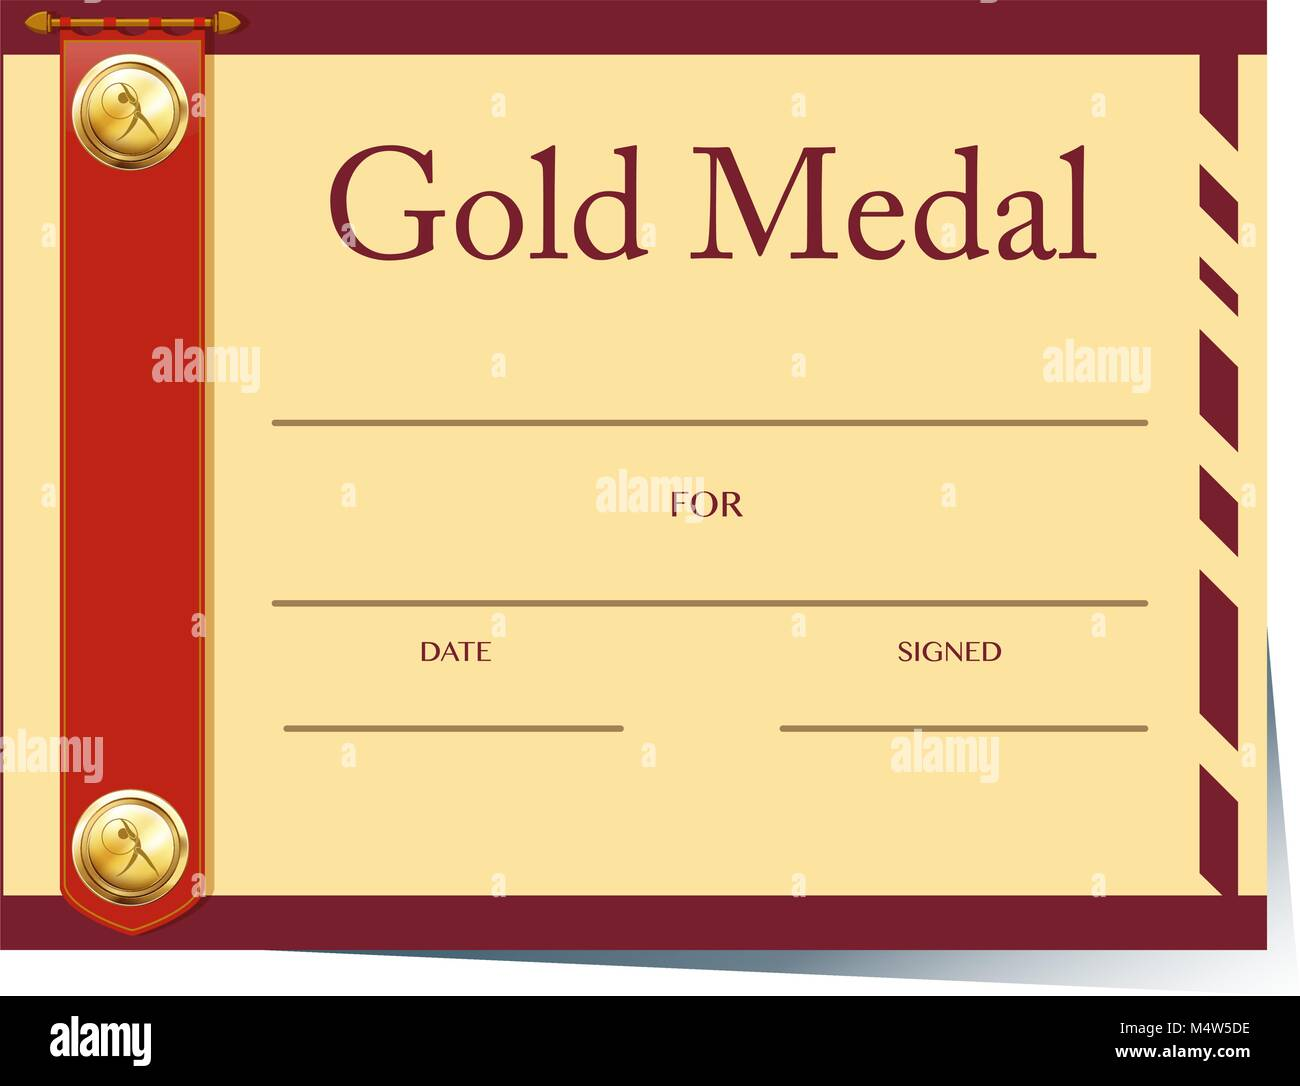 Gold medal certificate template images templates example free gold medal certificate template gallery templates example free certificate template for gold medal on paper illustration yadclub Image collections